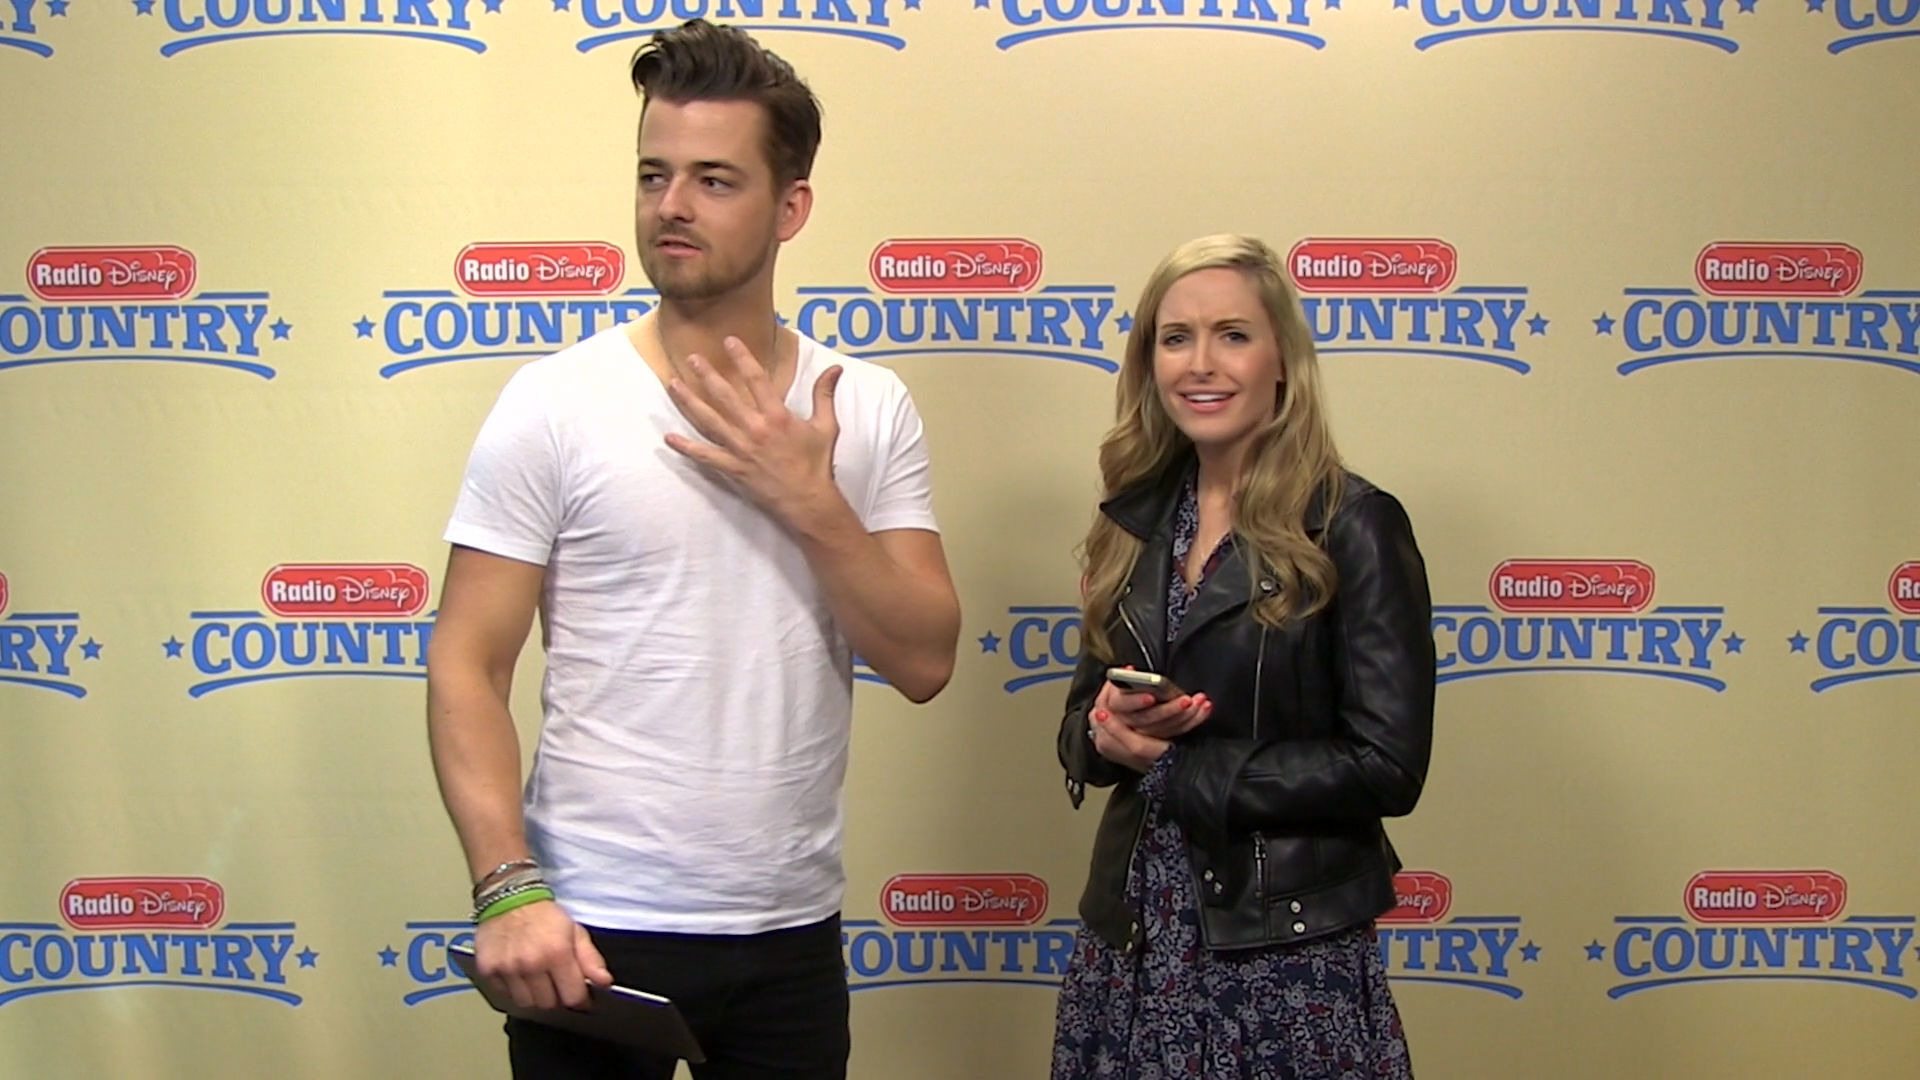 Chase Bryant Little Bit Challenge | Radio Disney Country